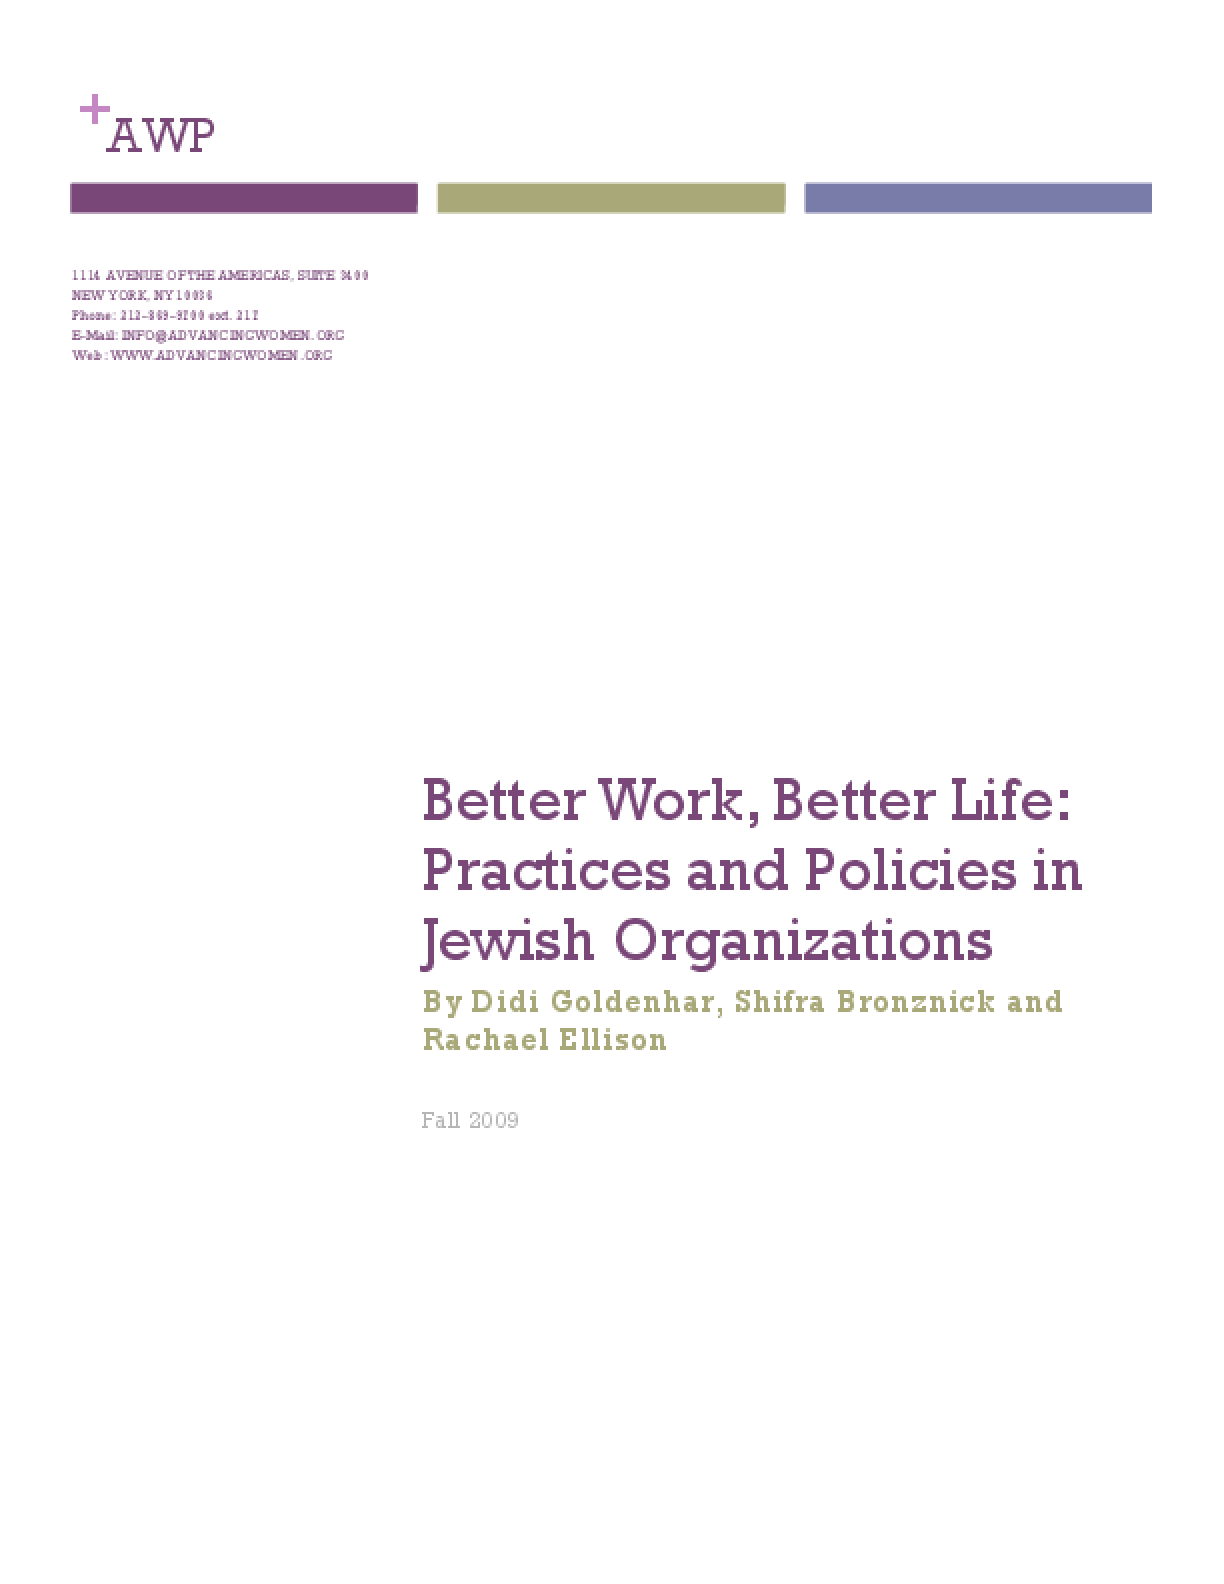 Better Work, Better Life: Practices and Policies in Jewish Organizations